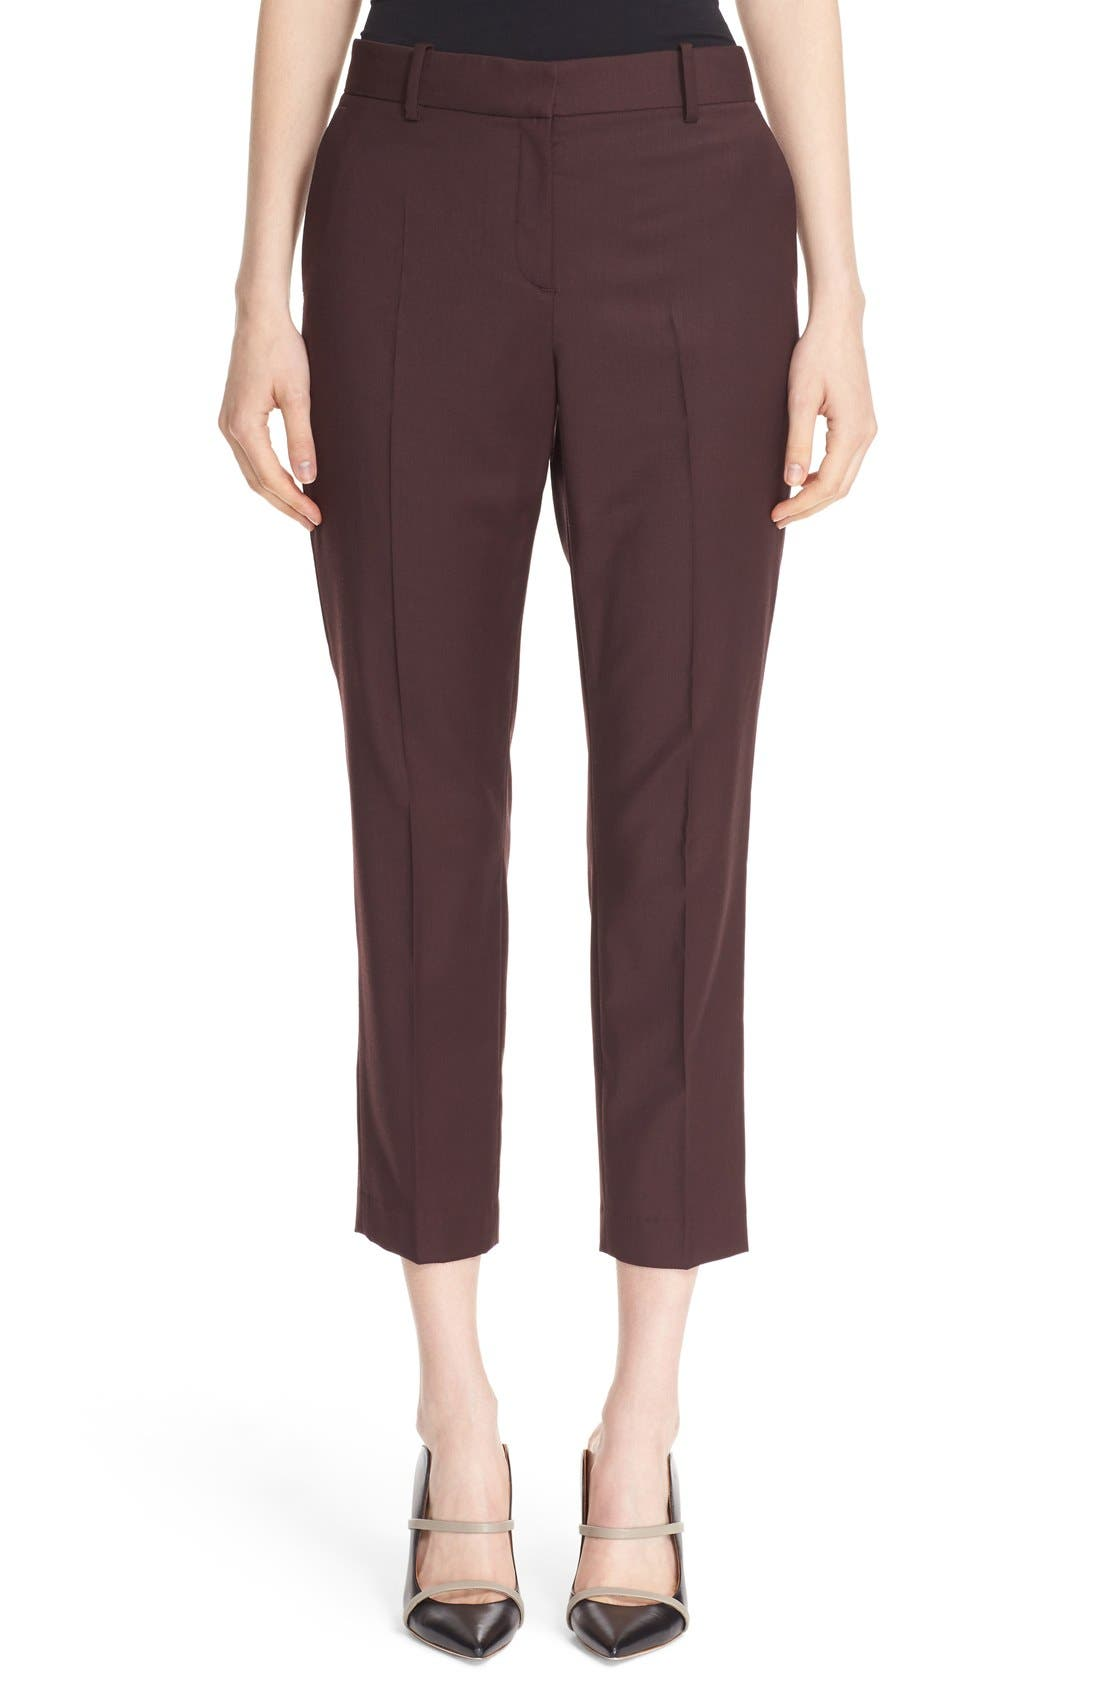 Alternate Image 1 Selected - Theory 'Treeca Continuous' Wool Blend Cigarette Pants